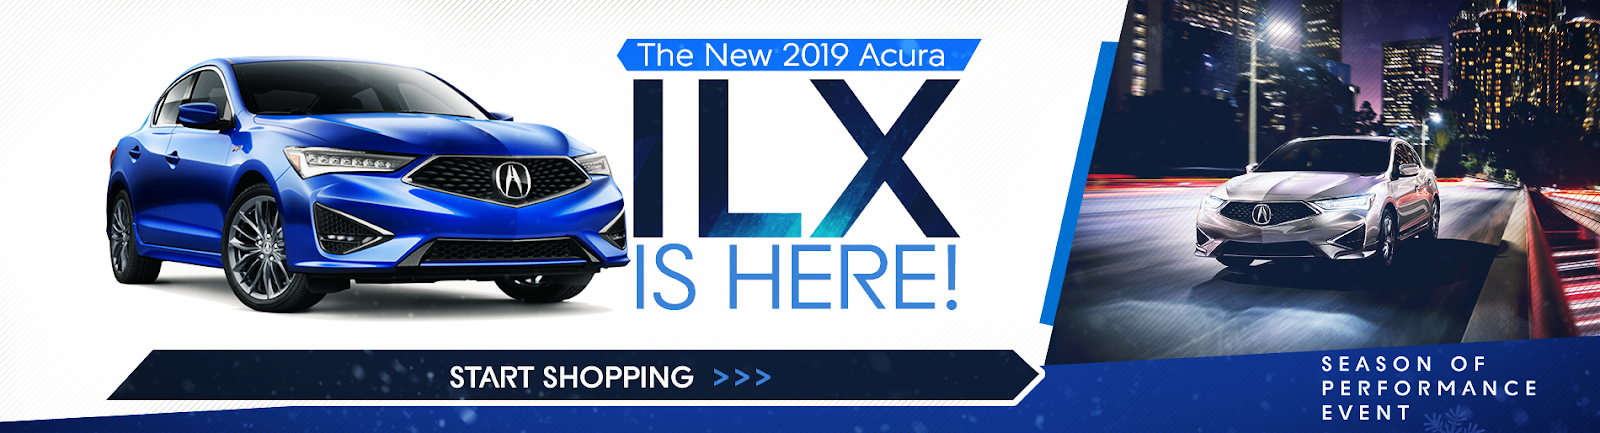 Acura Carland Season Of Performance New Vehicle Specials In Duluth